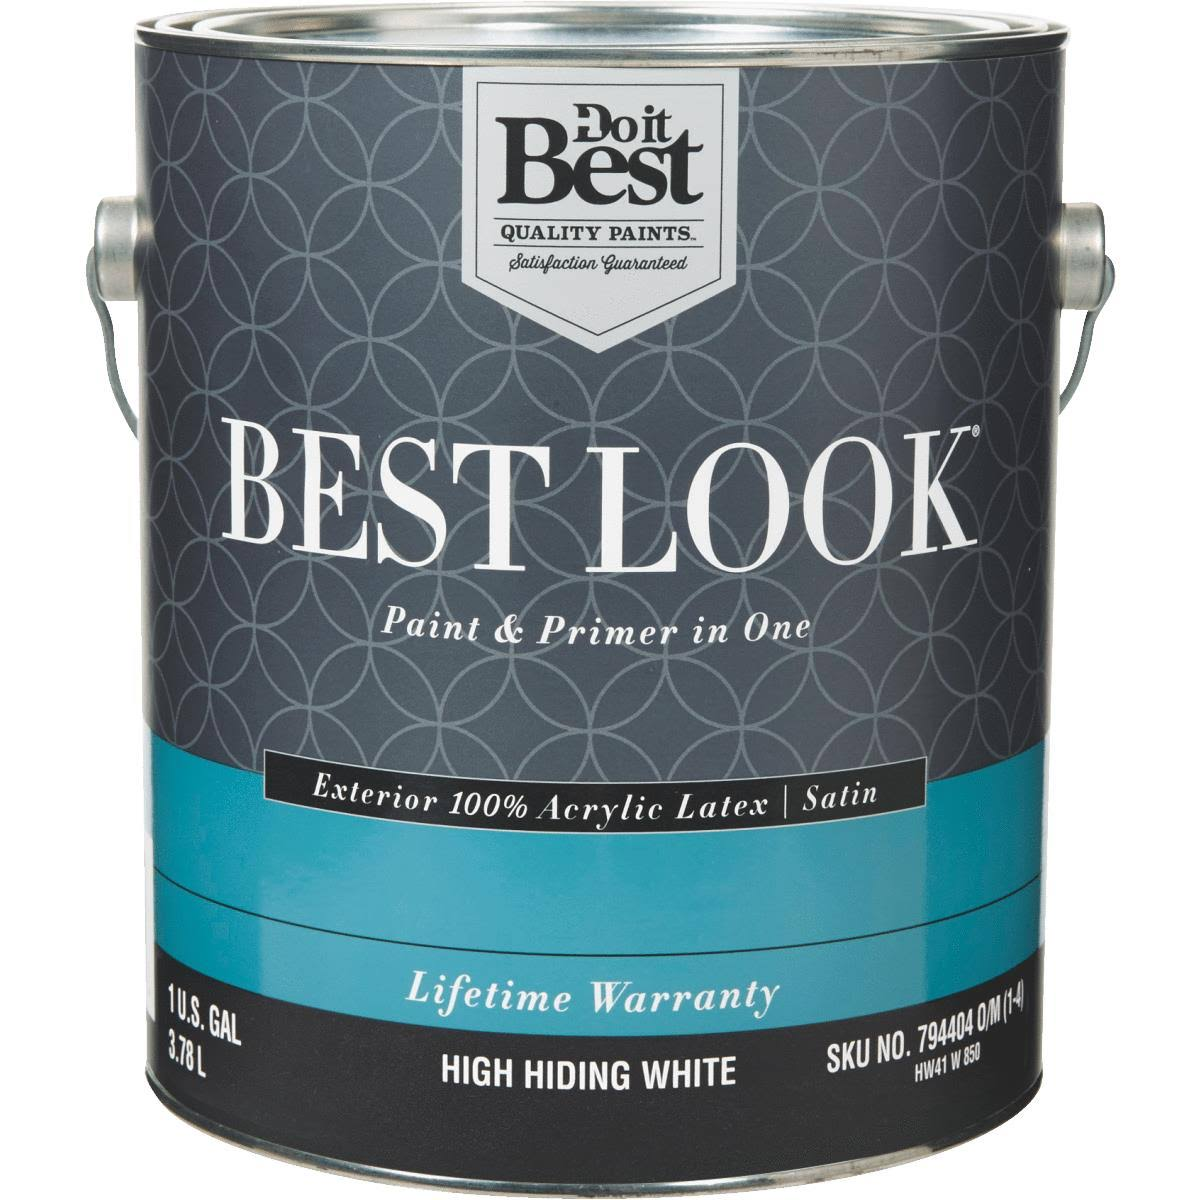 - HW41W0850-16 Best Look 100% Acrylic Latex Paint & Primer in One Satin Exterior House Paint